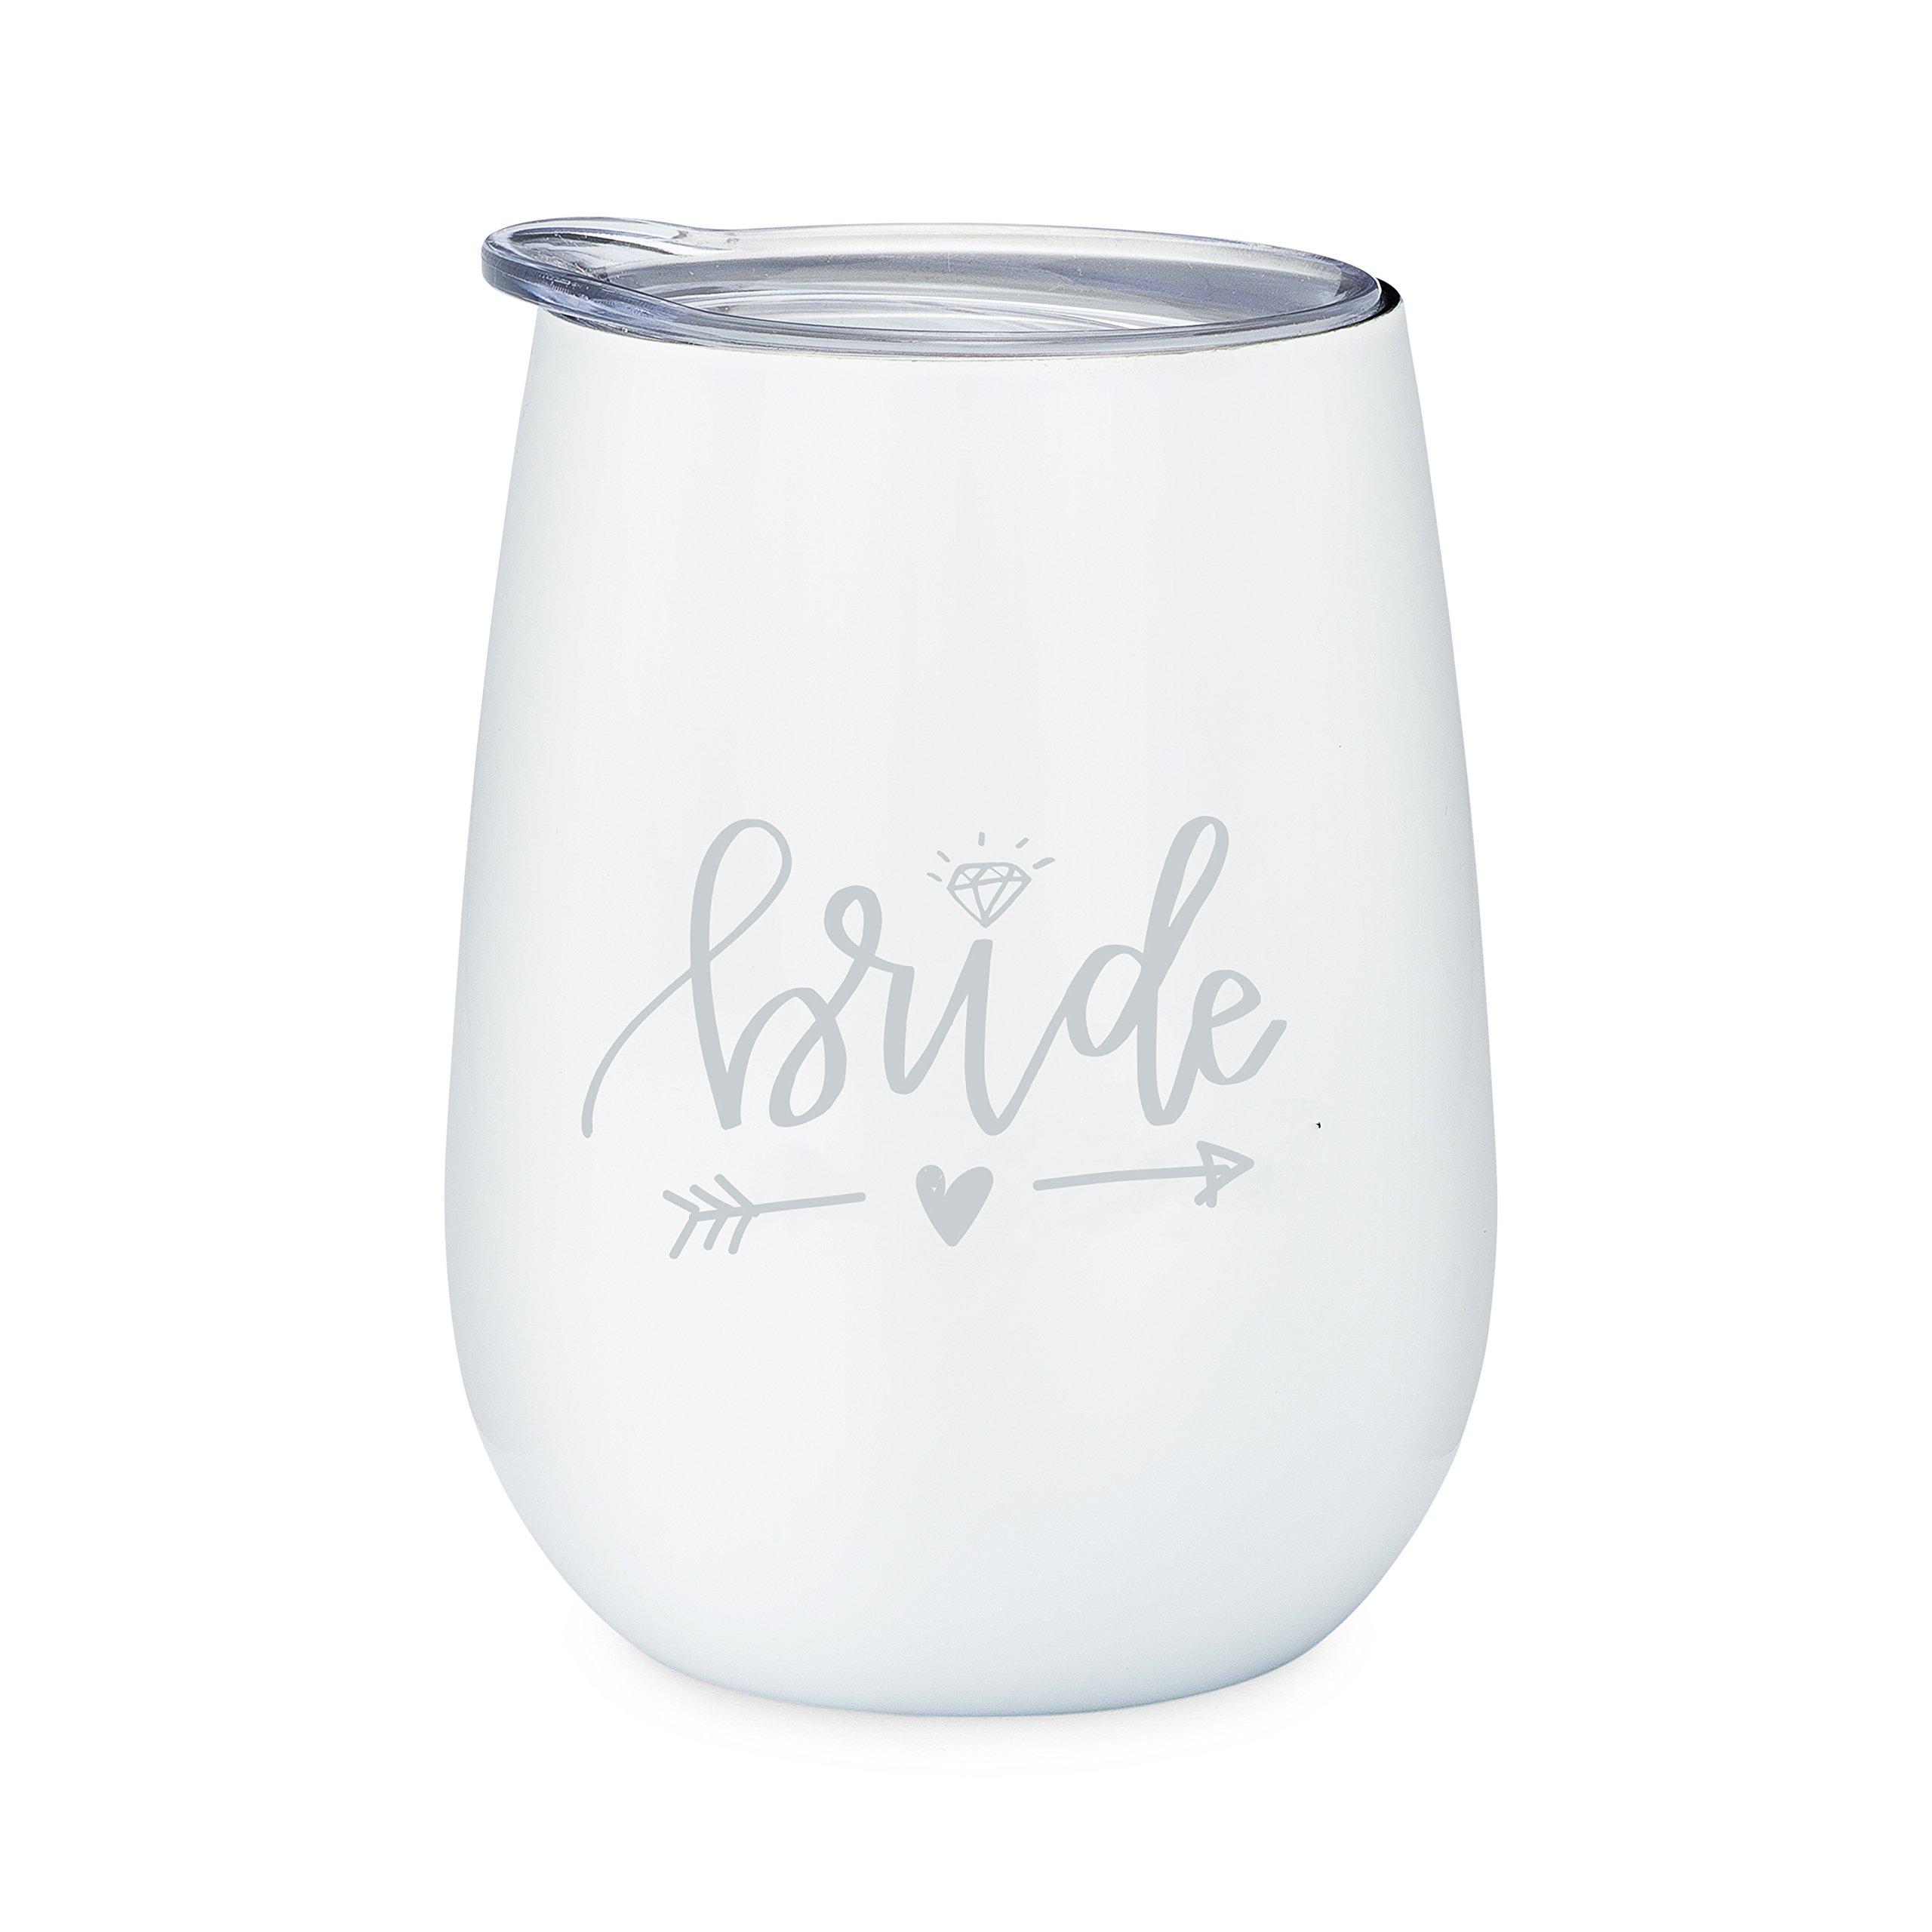 Bride - 10 oz Stainless Steel Wine Tumbler with Lid (White and Silver)